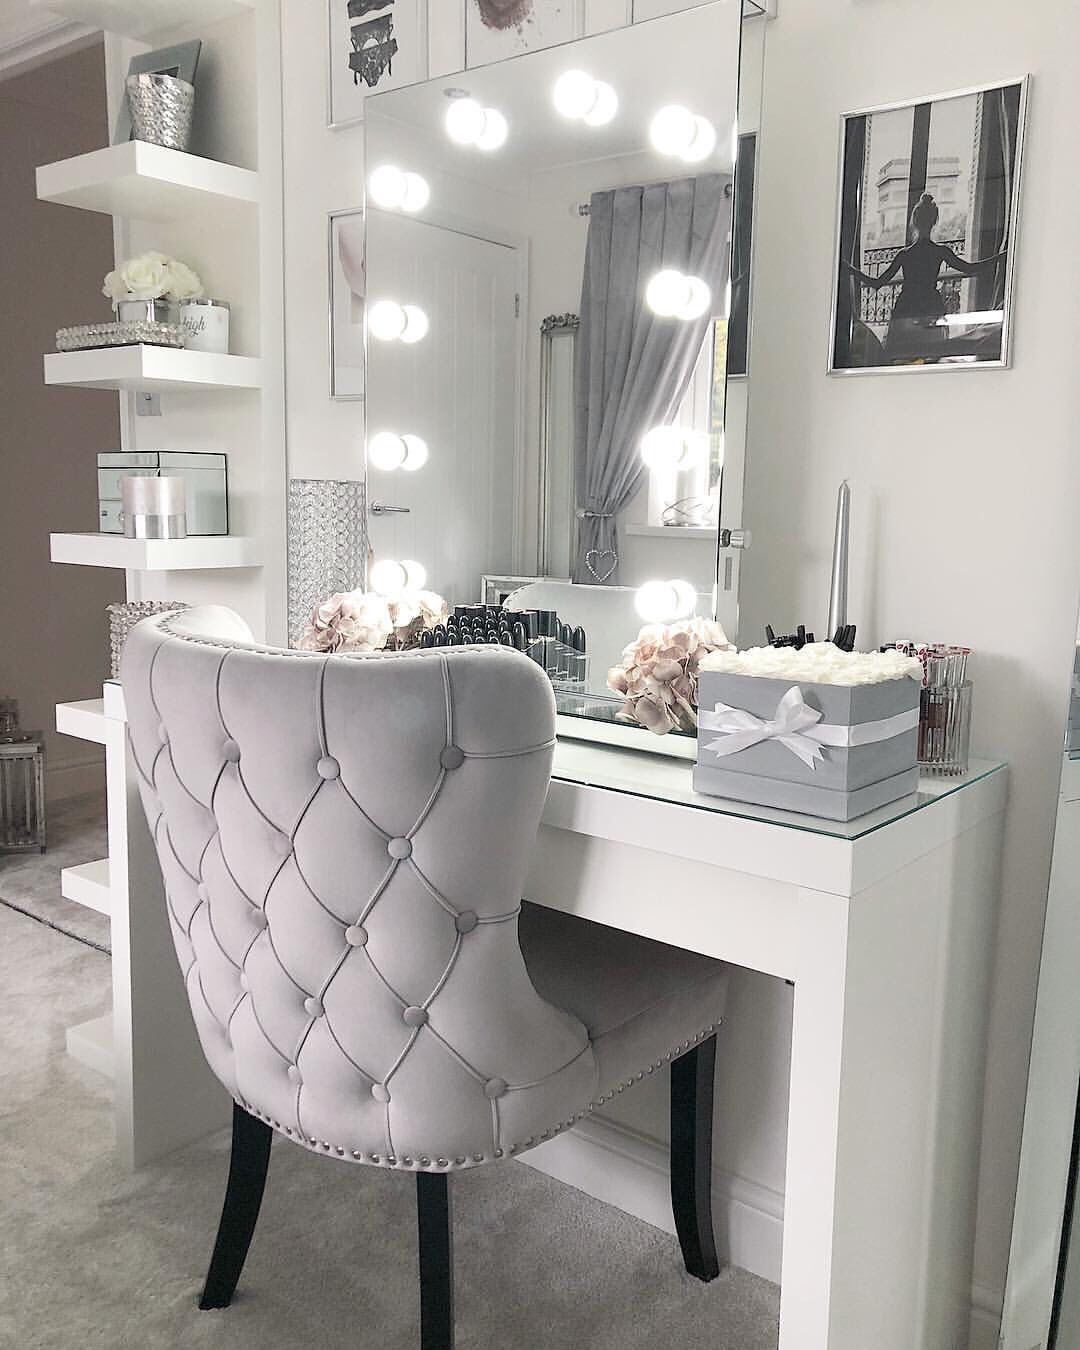 20 Vanity Mirror With Lights Ideas Diy Or Buy For Amour Makeup Room Apartment Decor Bedroom Decor Interior